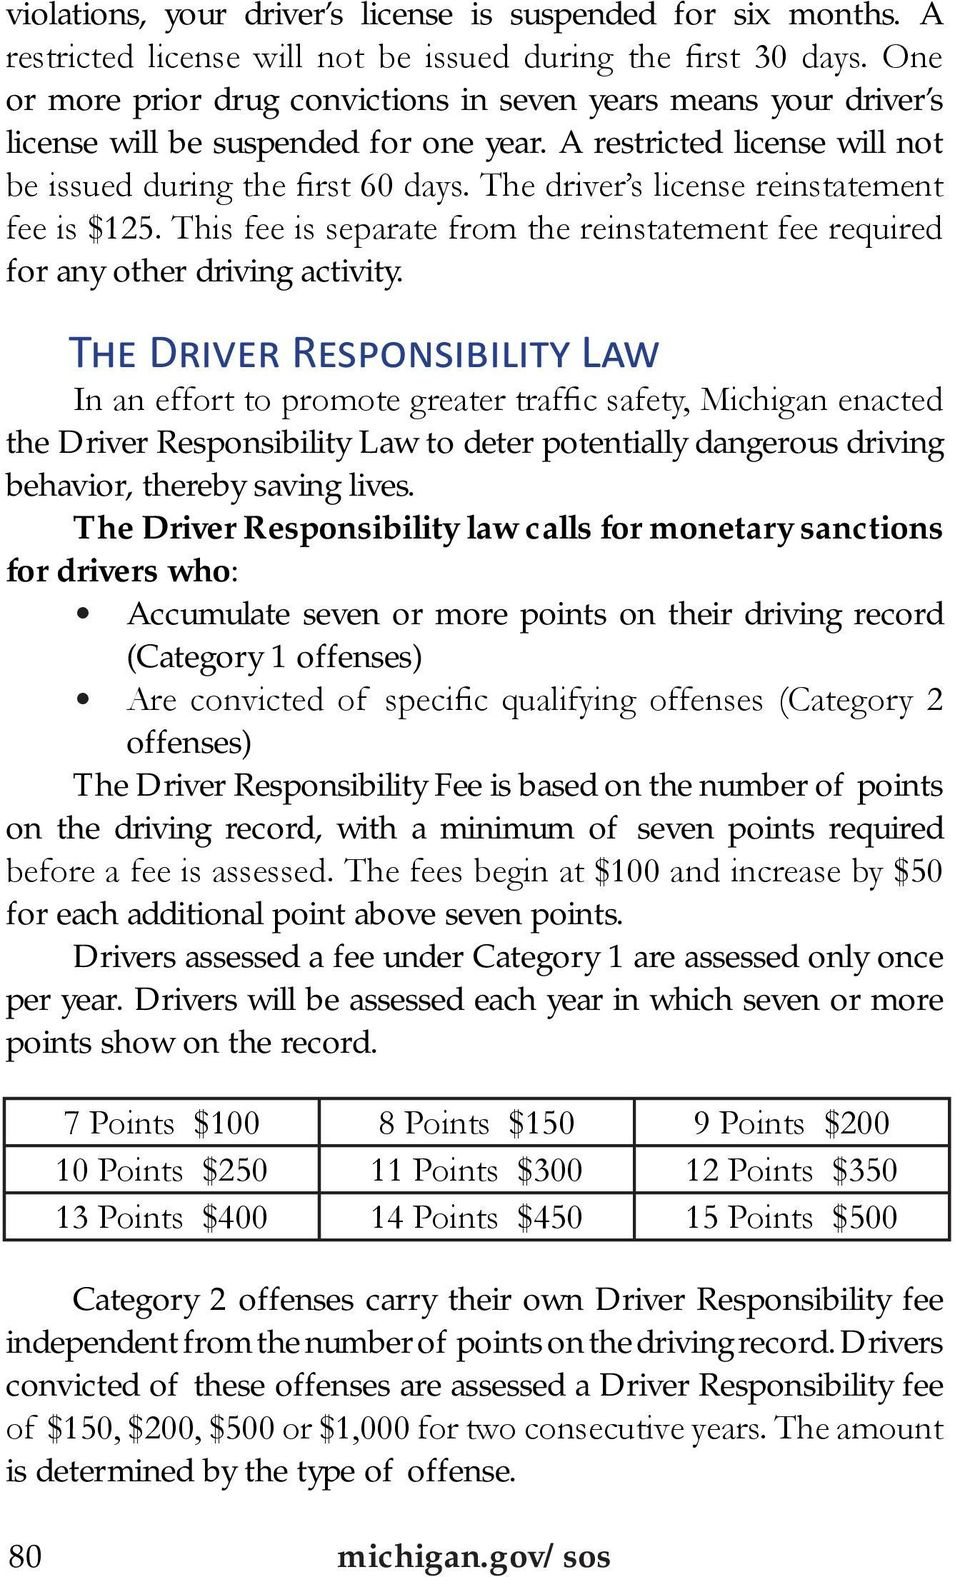 The driver s license reinstatement fee is $125. This fee is separate from the reinstatement fee required for any other driving activity.